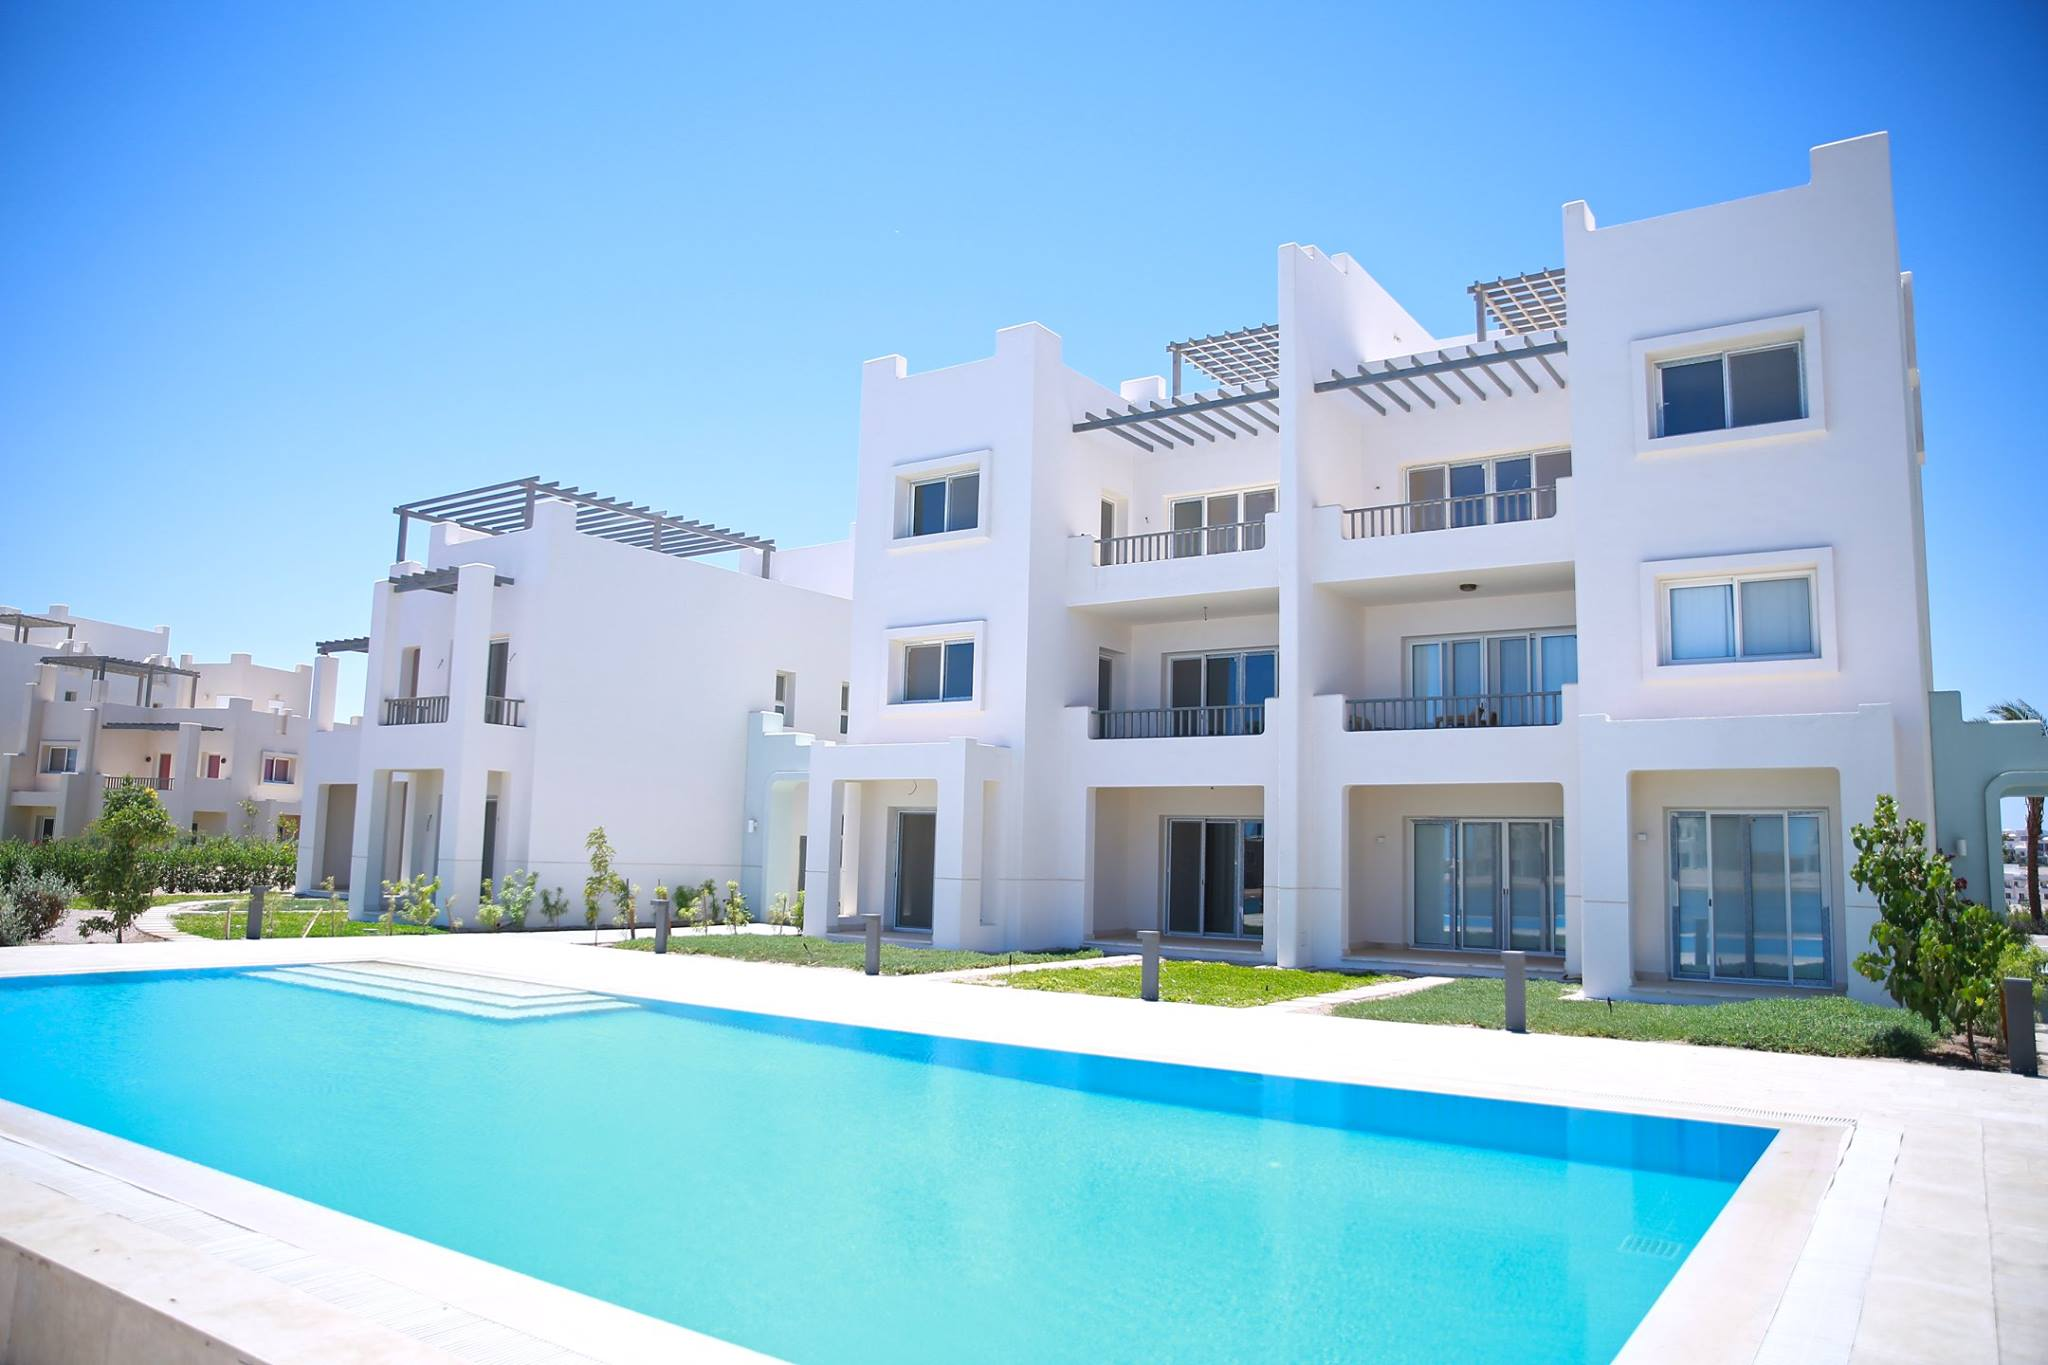 El gouna property investment absolute return investment advisers